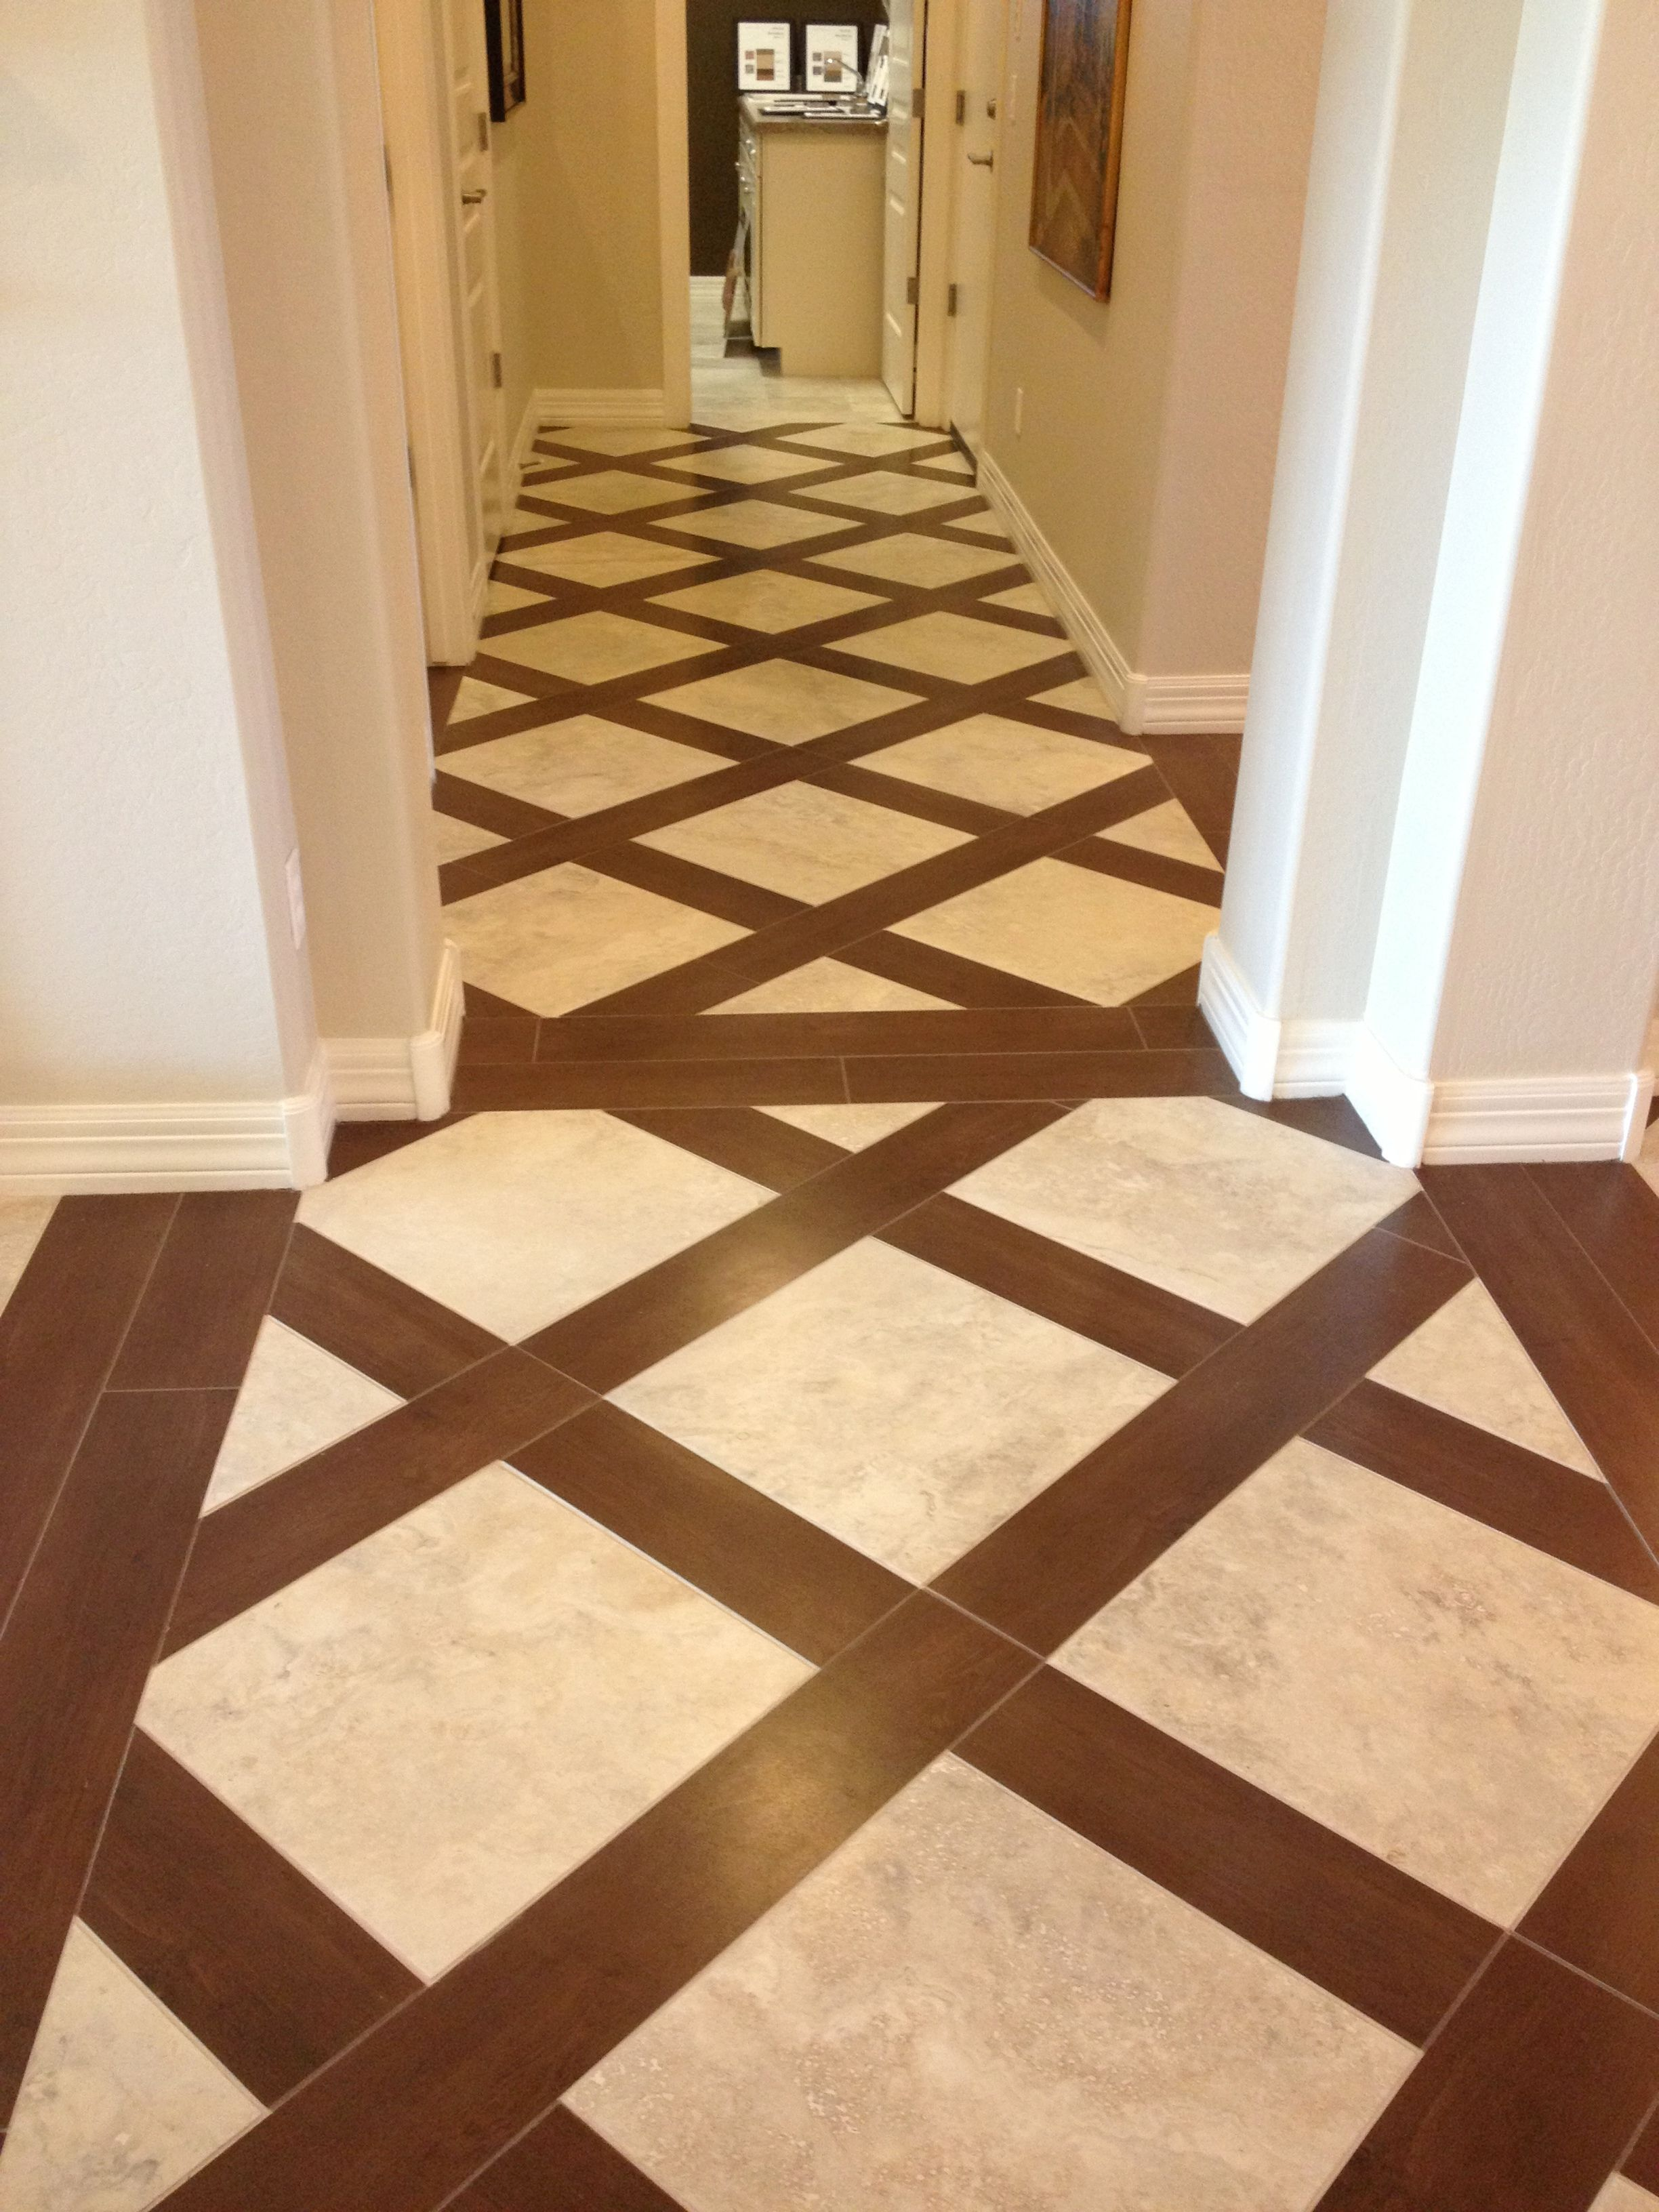 Tile And Wood Lattice Flooring Some Separation From One Section To Another Gives It Character